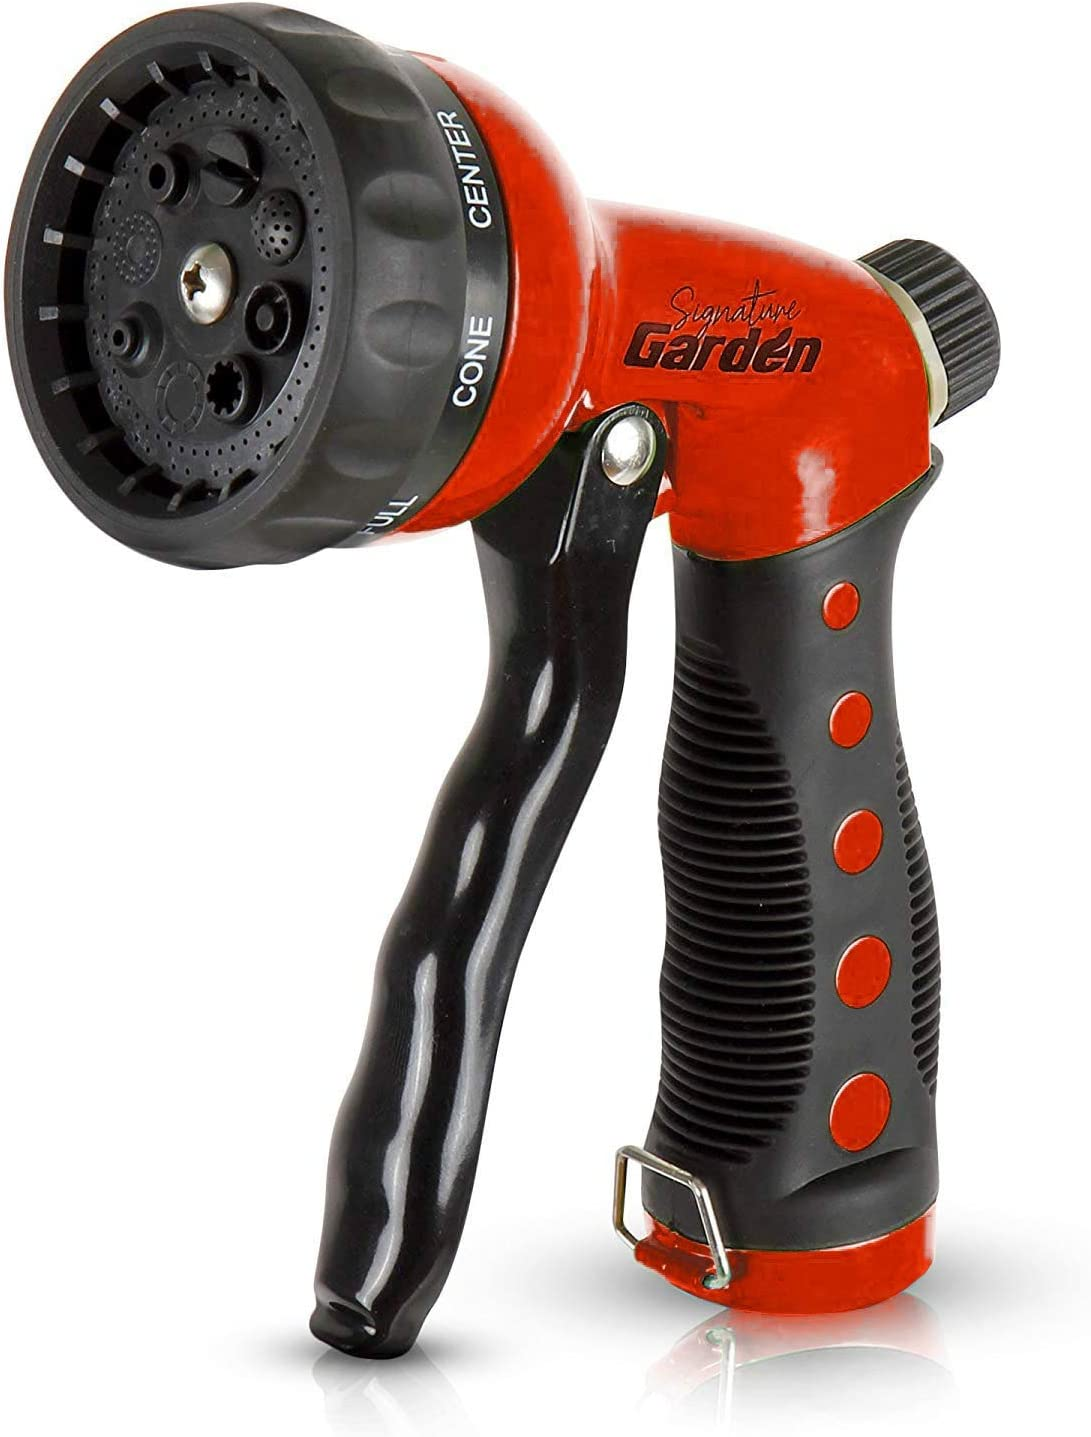 Signature Garden Heavy-Duty Nozzle, Comfort-Grip 8 Different Spray Patterns for Watering Lawns, Washing Cars & Pets (Red)